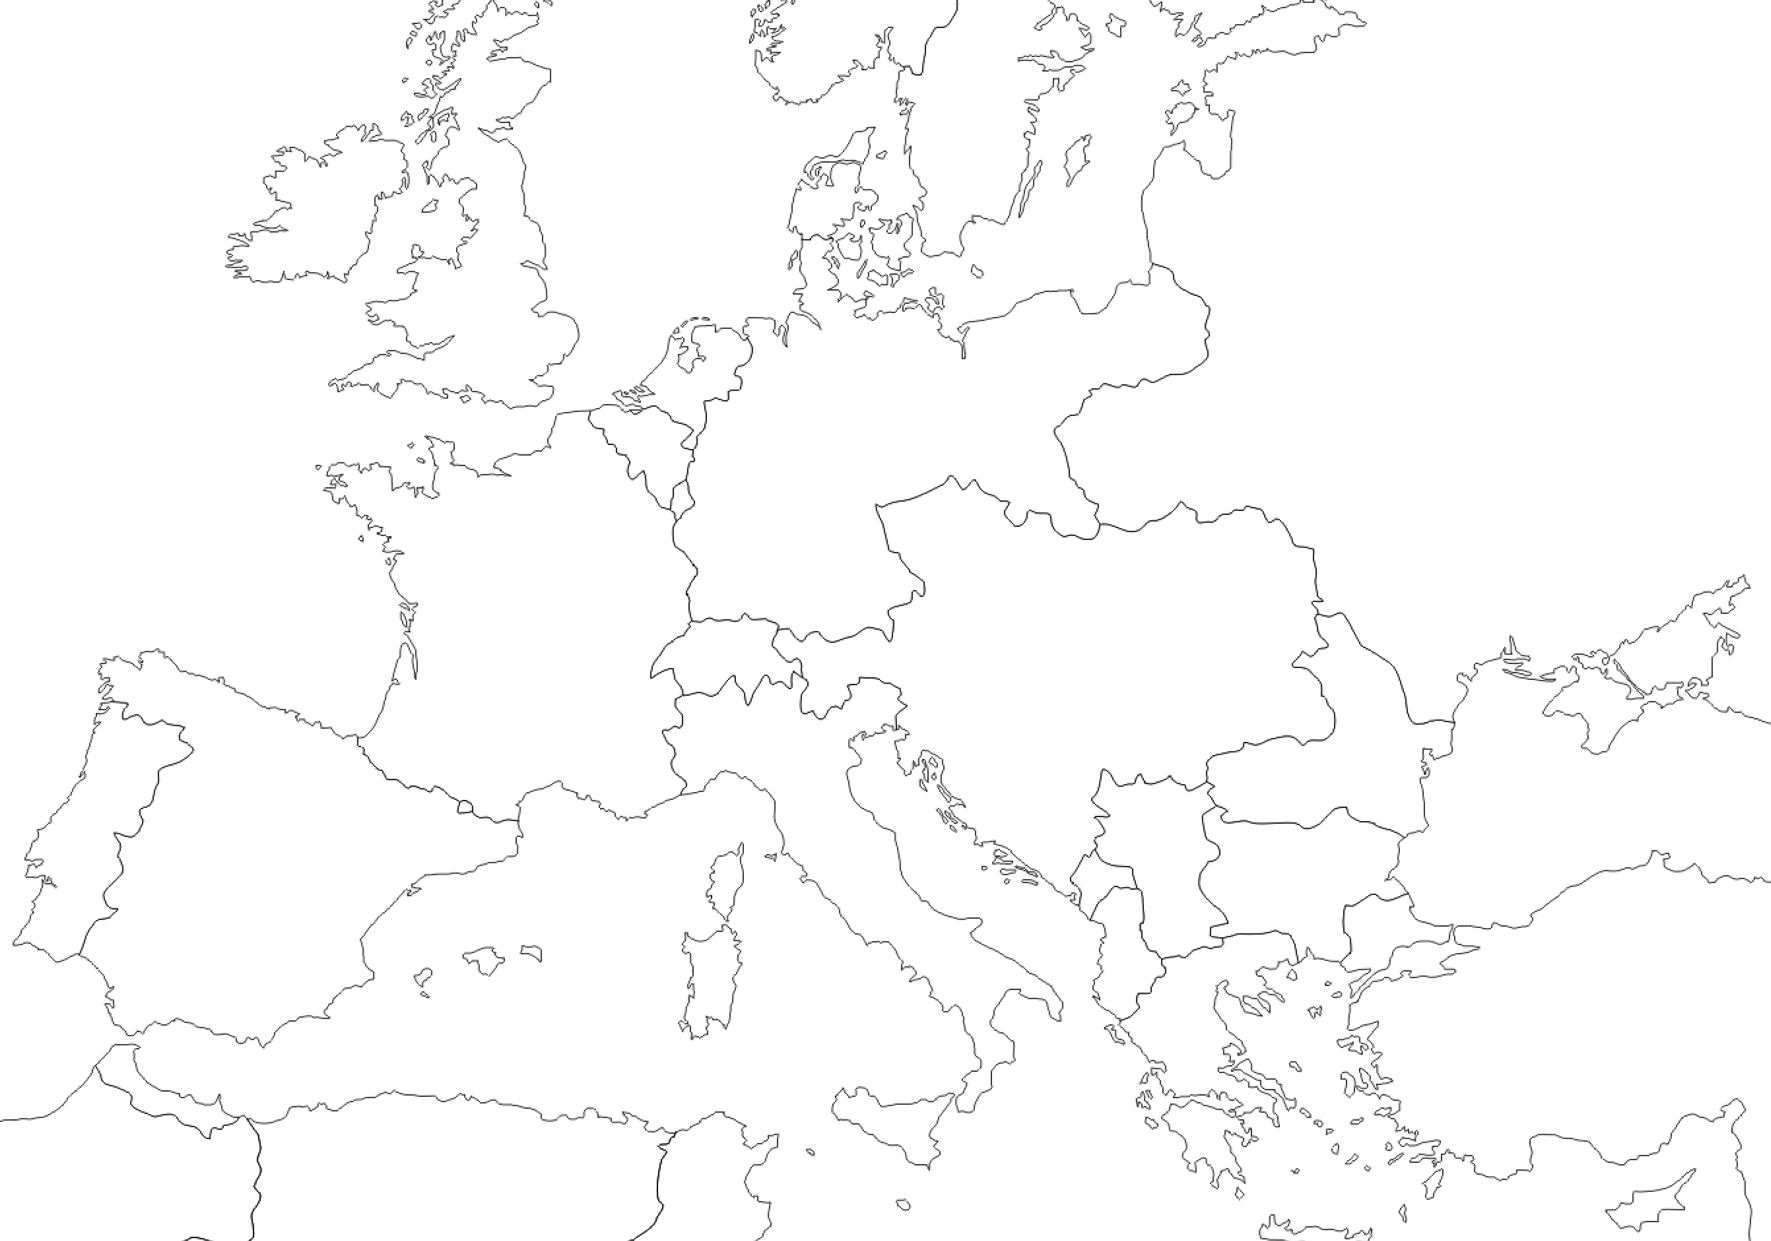 1914 outline map of europe wwi pinterest wwi and history 1914 outline map of europe publicscrutiny Choice Image